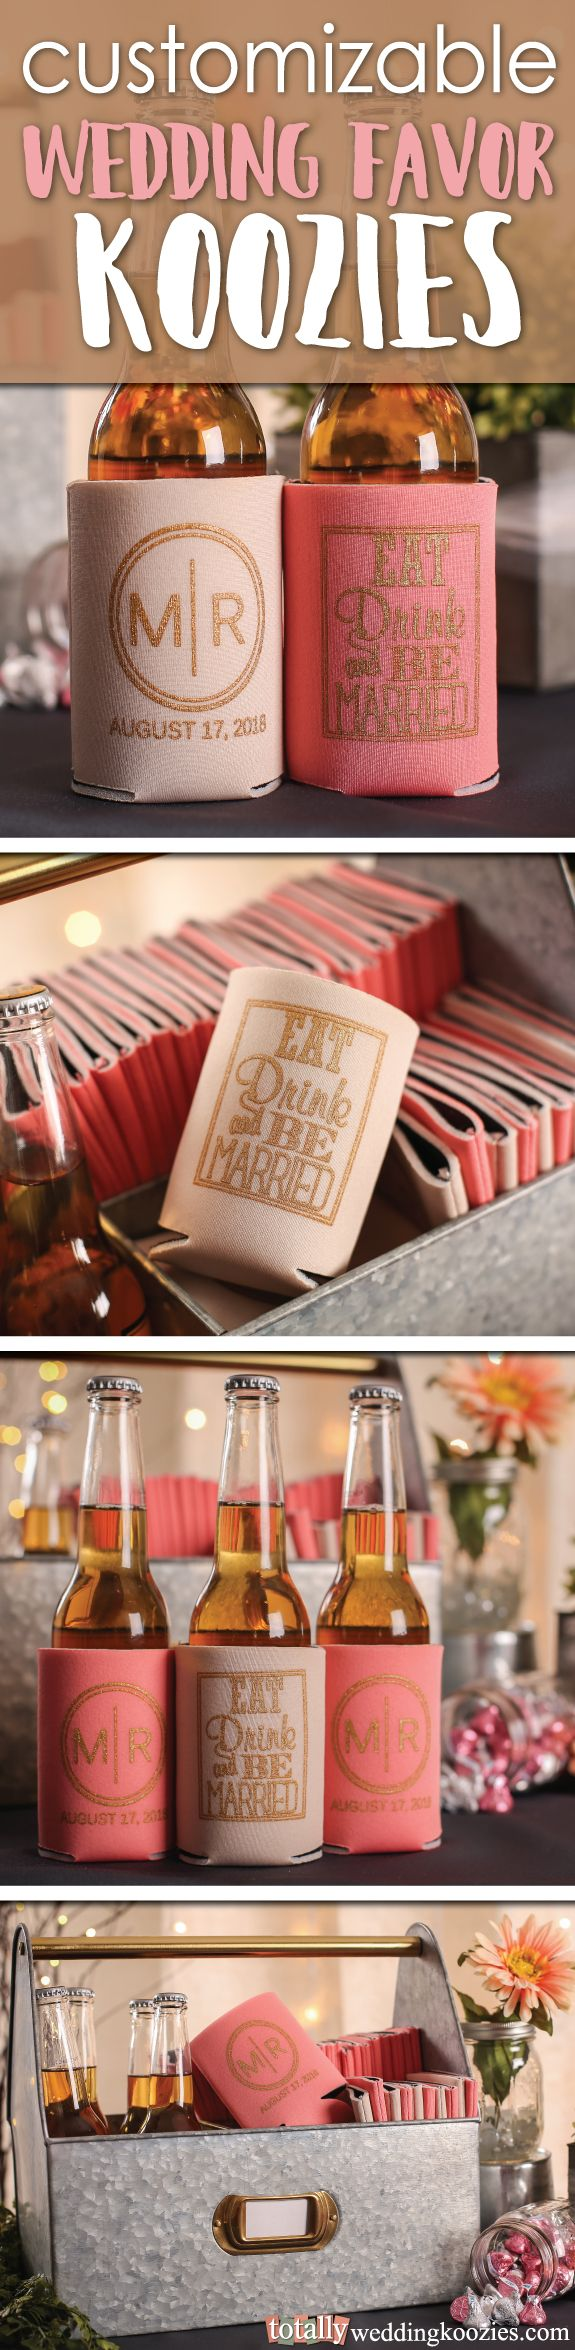 Our customizable wedding koozies offer a unique and fun way to thank your guests! This product is offered in 45 product colors with 23 imprint colors to choose from, your options are endless! Every wedding koozie order also comes with a FREE complimentary bride & groom koozie!  Use coupon code PINFREESHIP and receive FREE Ground Shipping in the Continental United States! Code is not valid with other coupon codes and is valid through April 4, 2017!